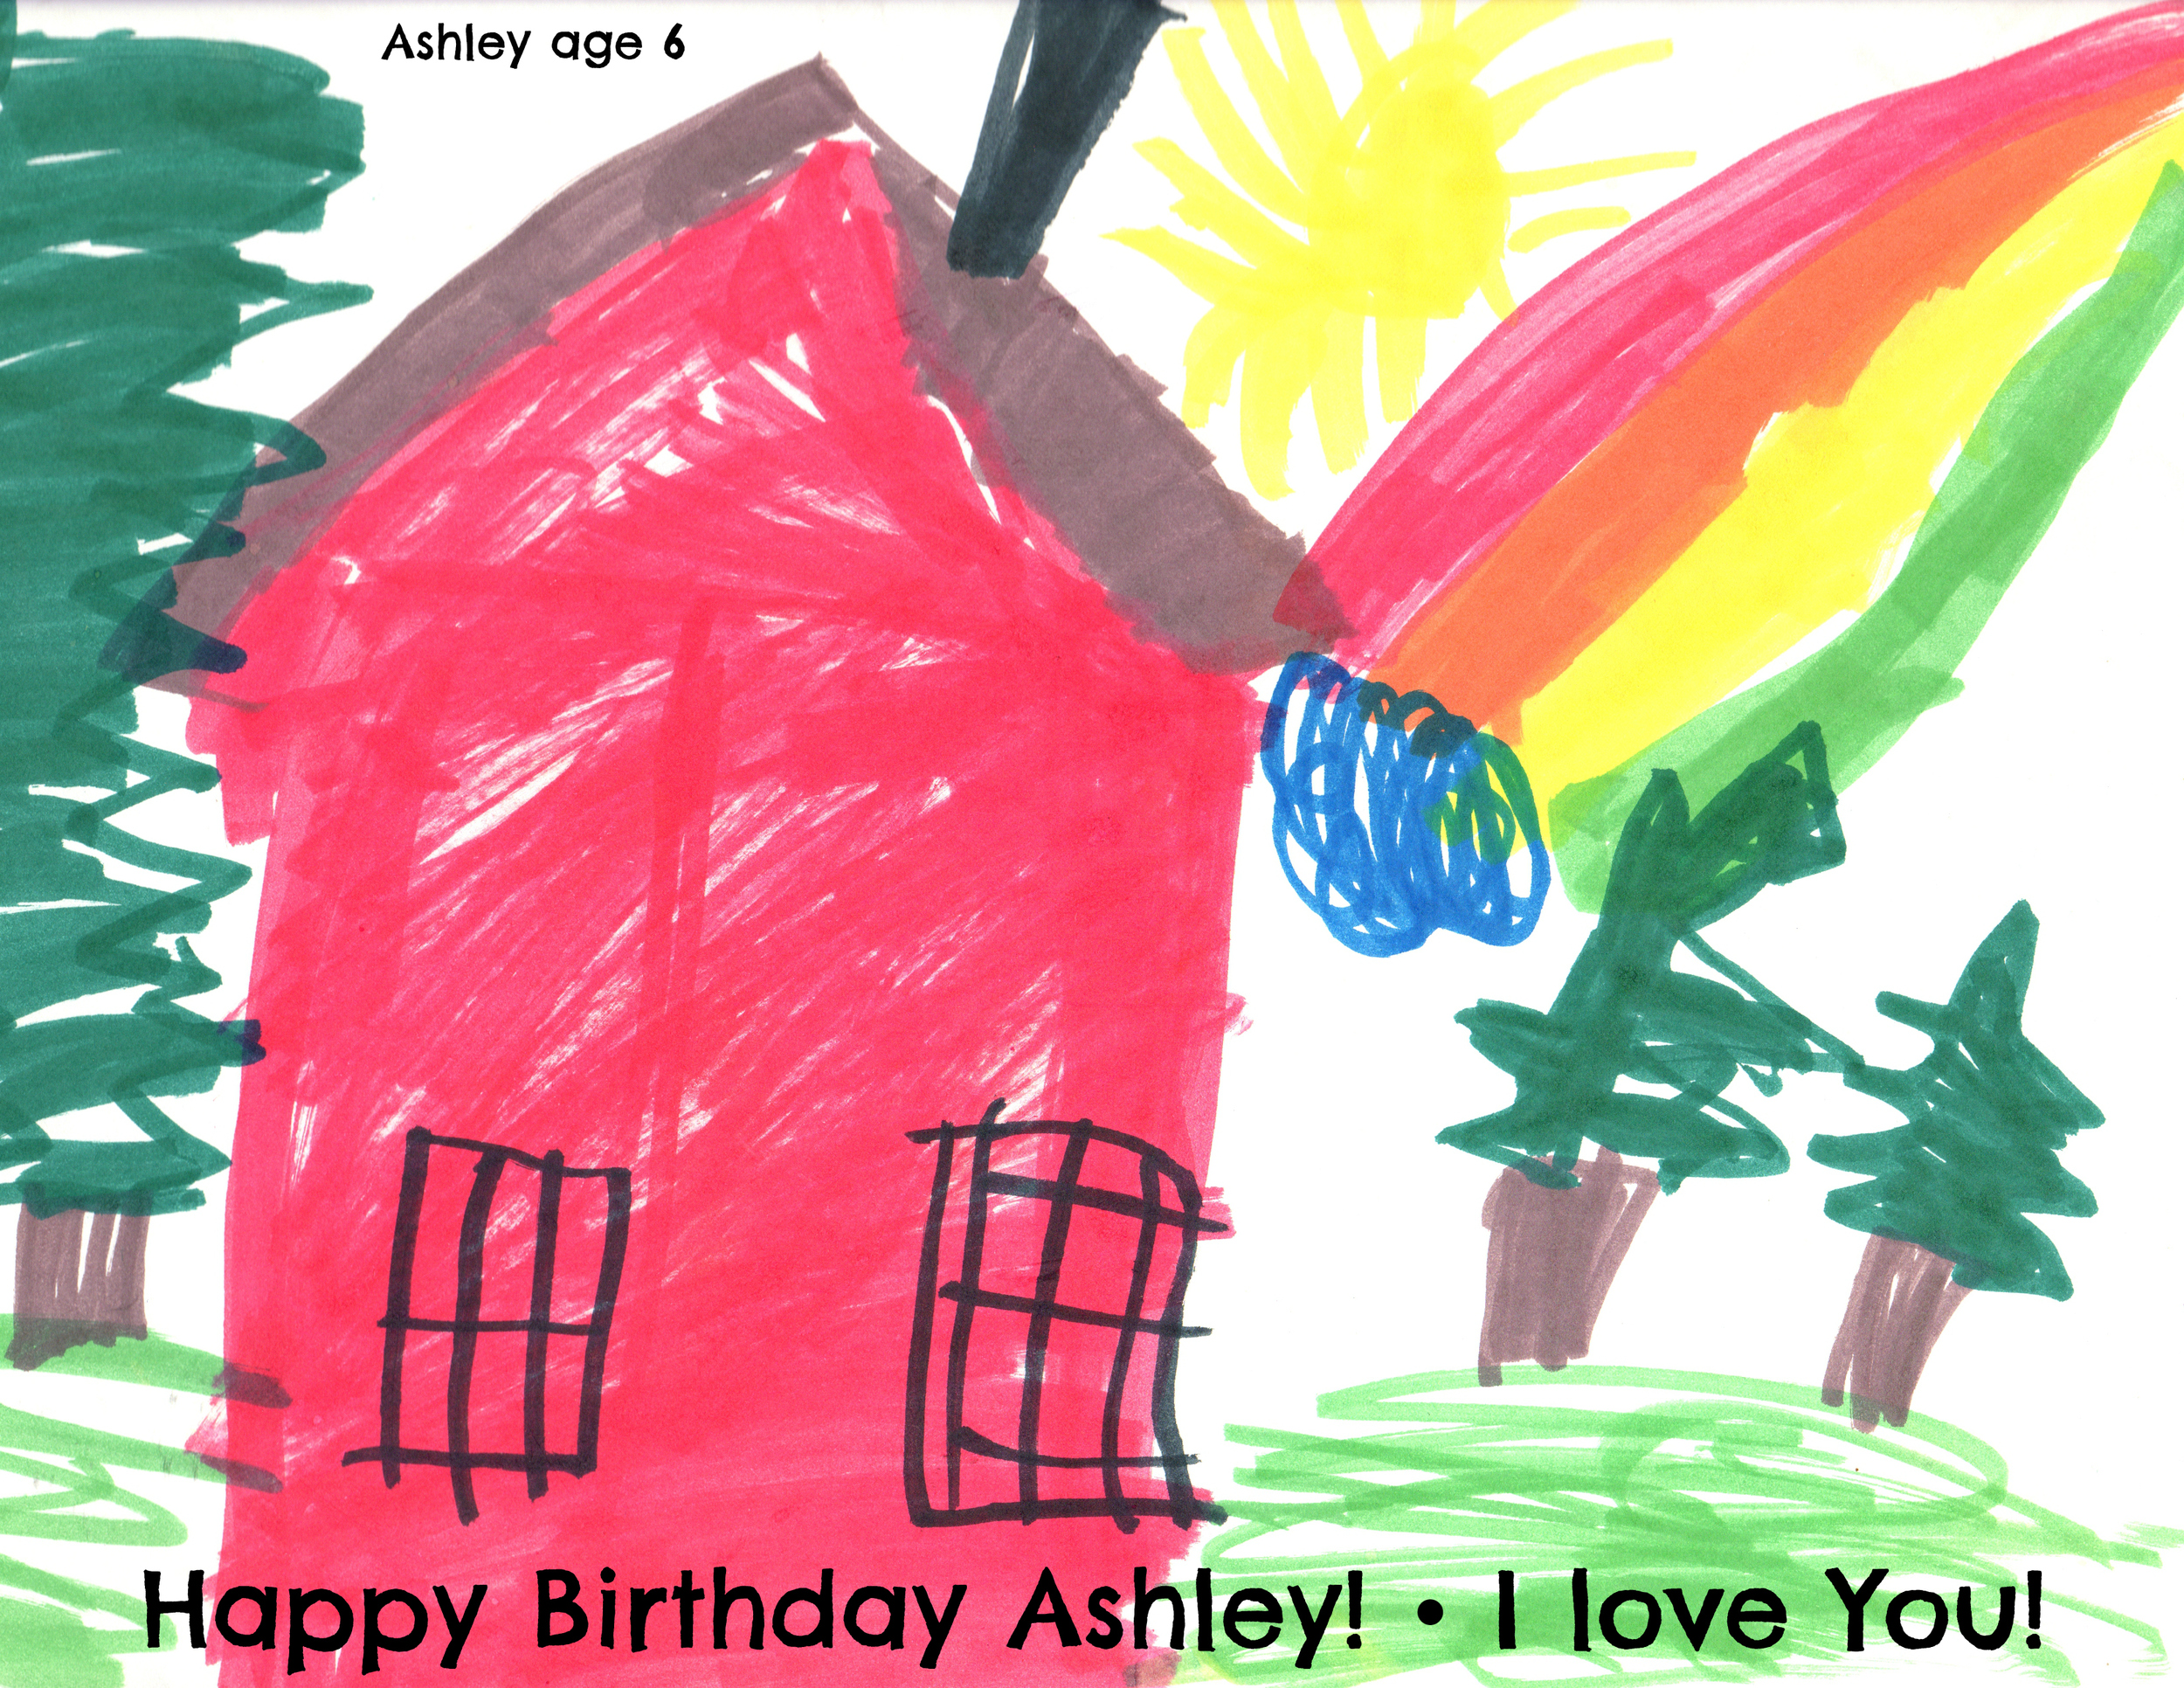 Ashley - I am so proud of the woman you are. When I think of you my eyes fill with tears of gratitude, admiration, and the best memories of my life. You celebrate life and it teaches the rest of us to remember to live each day fully also. When I think of your birthday, I think of pinatas and sombreros.My life would not have been near as rich if you had not come along. Everyone who knows you can honestly say the same. I love you Ashley. Happy Birthday.